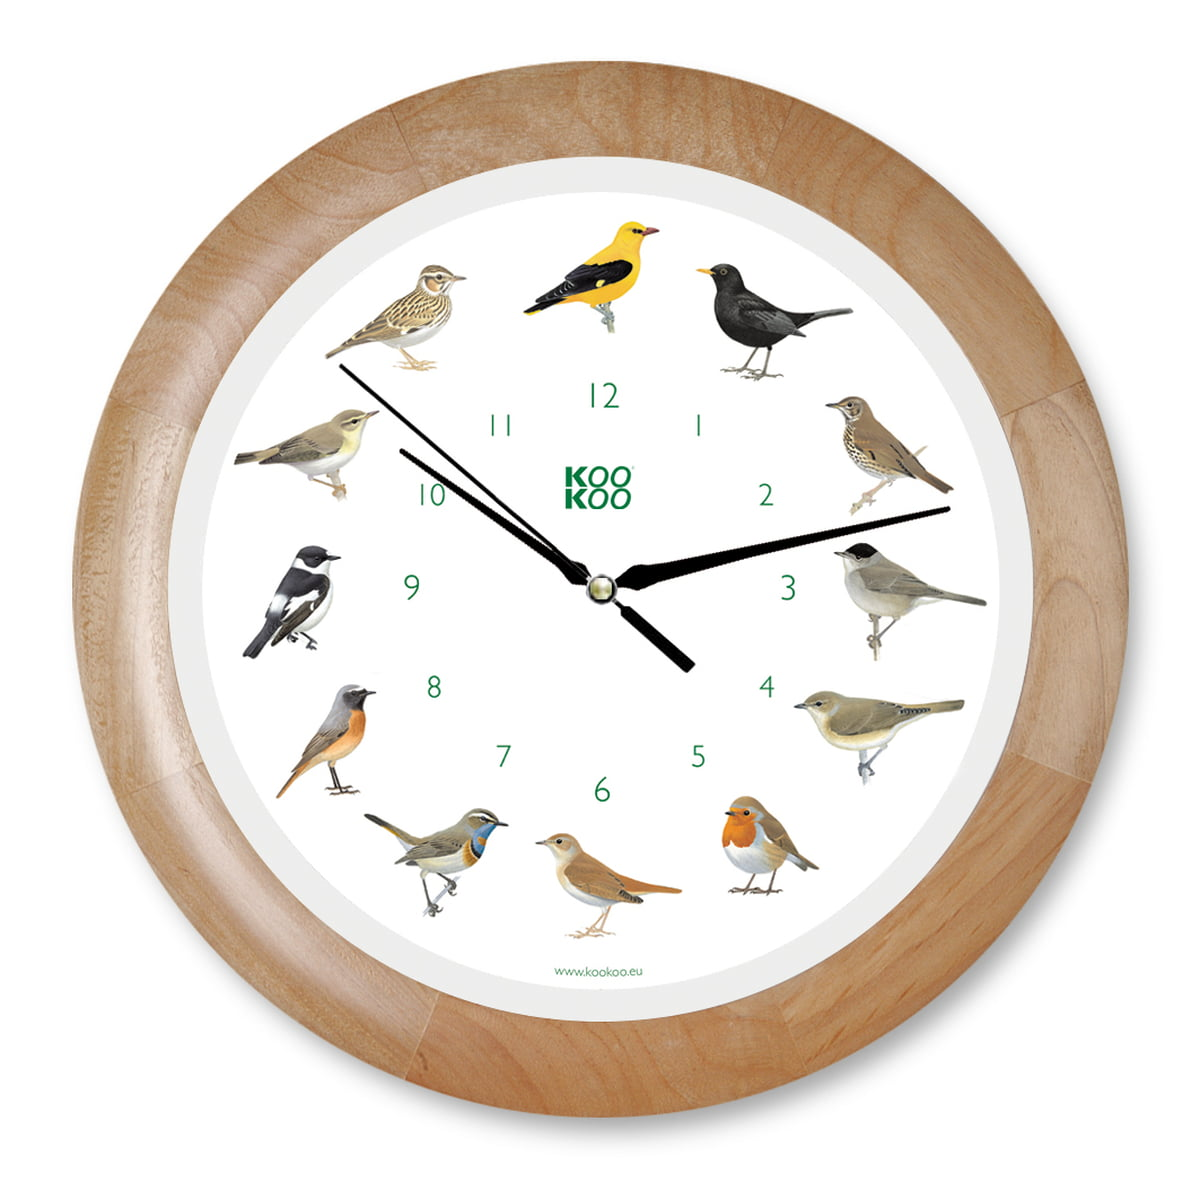 singing bird wall clock by kookoo. Black Bedroom Furniture Sets. Home Design Ideas